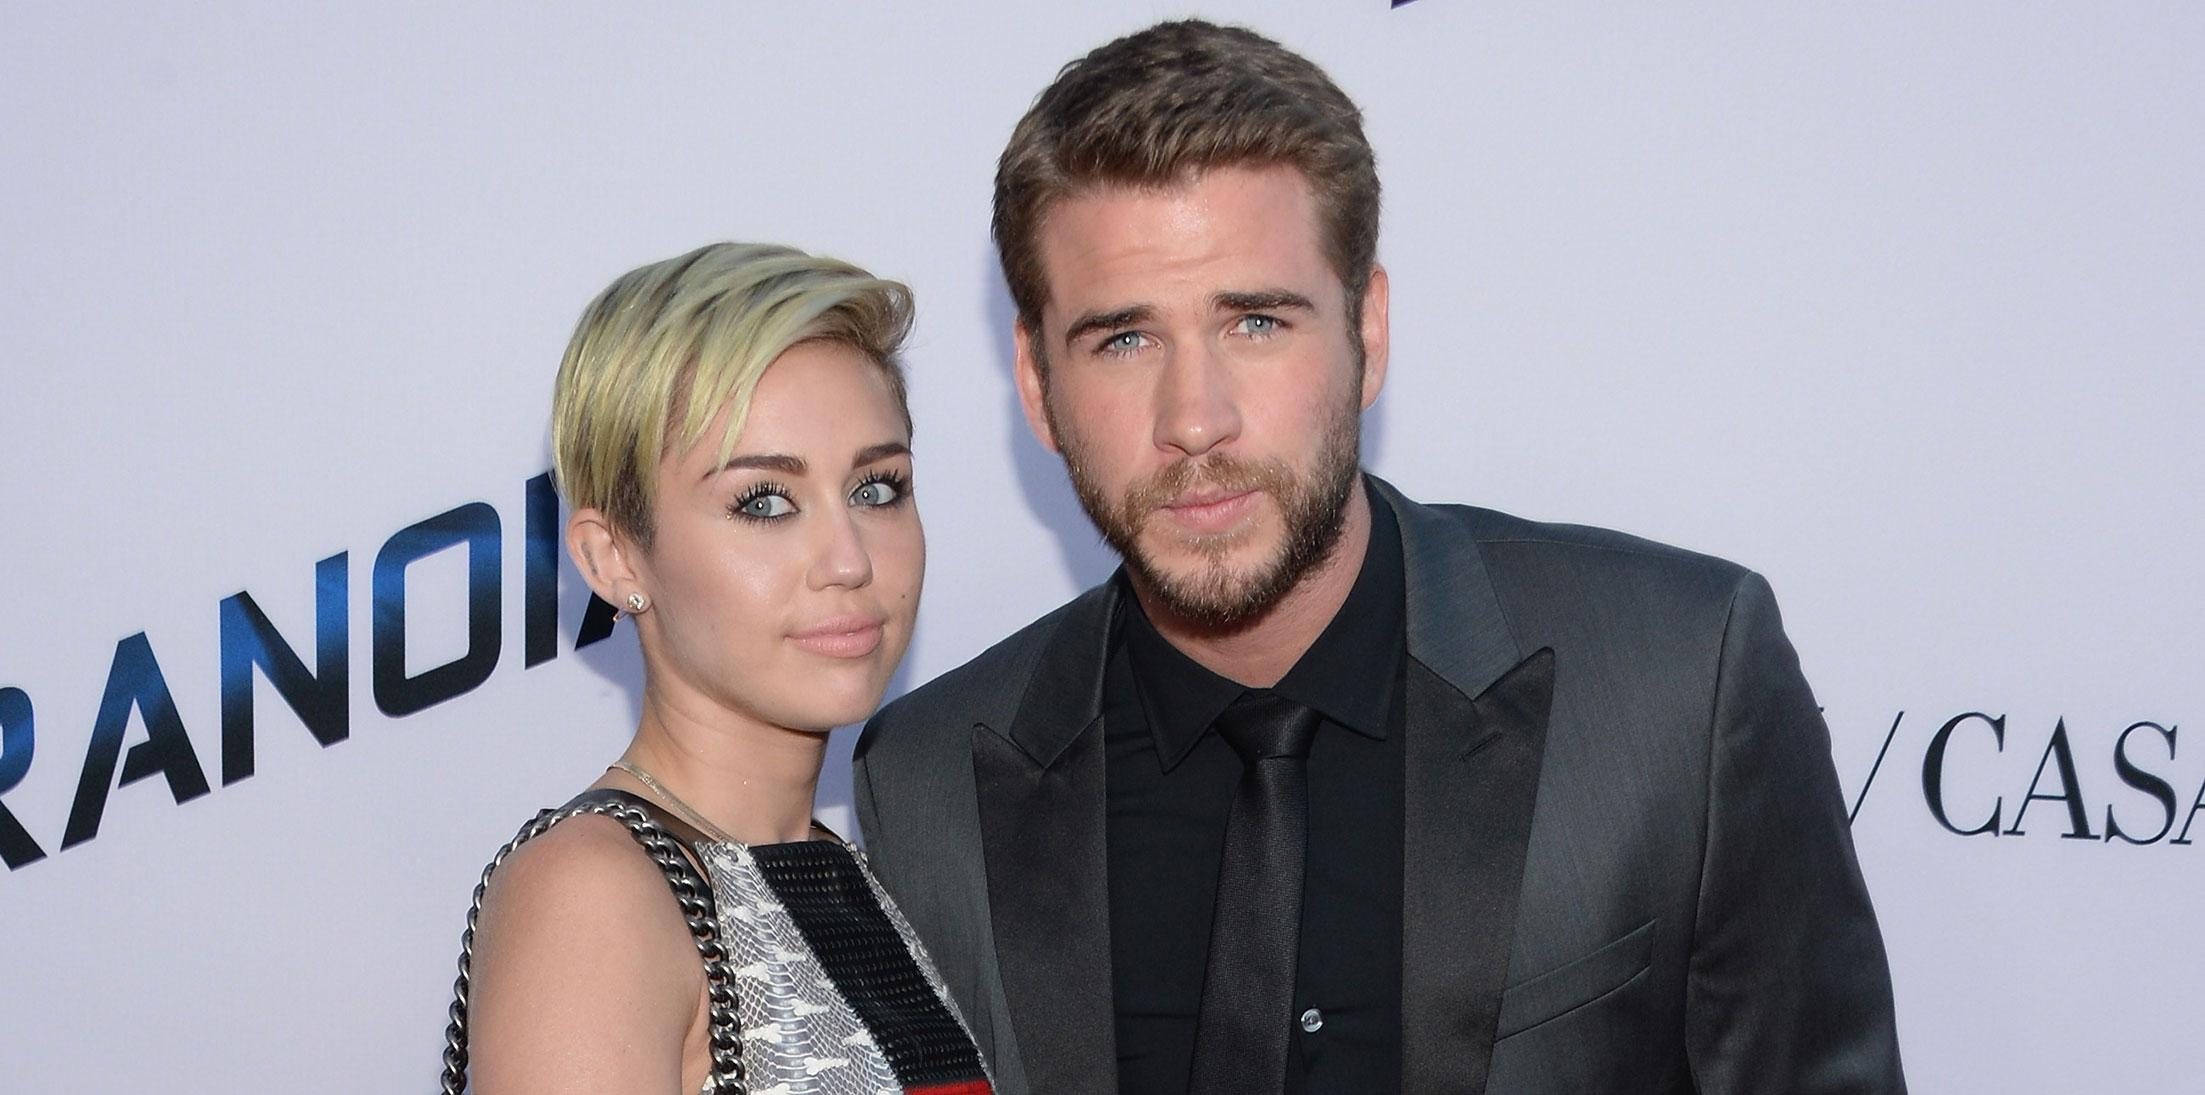 Miley cyrus won't marry liam hemsworth wide